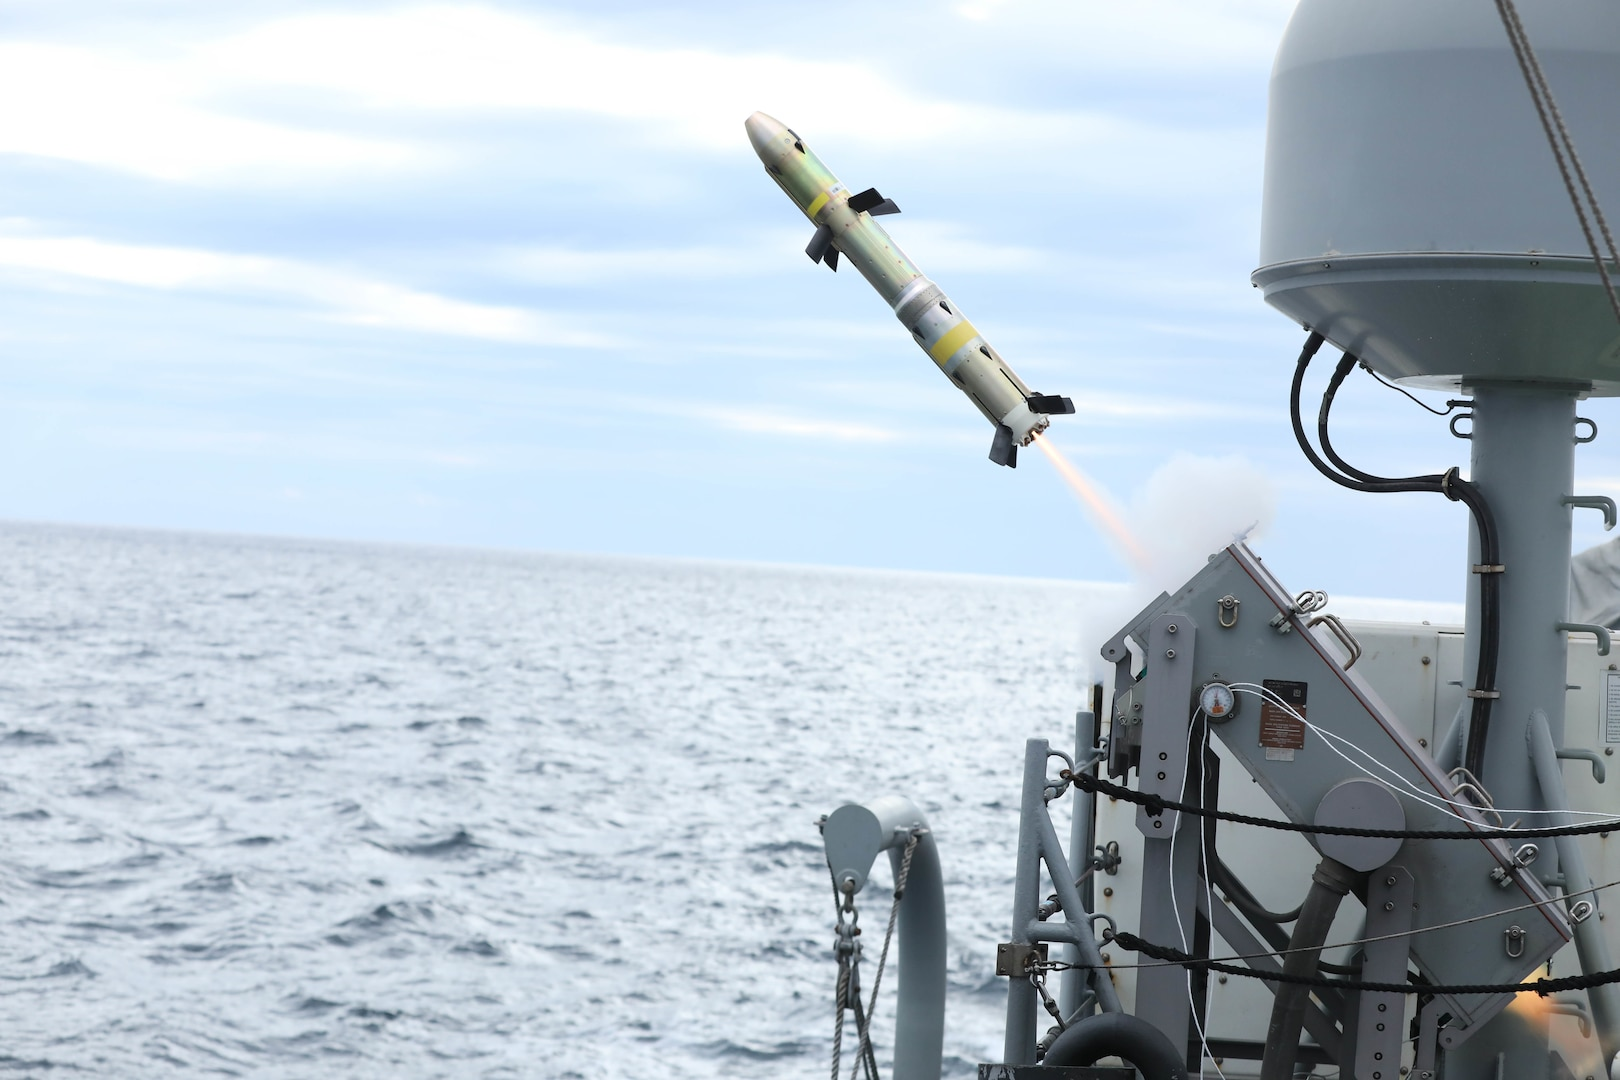 A Griffin missile is launched from the patrol coastal ship USS Hurricane (PC 3) during a test of the MK-60 Griffin guided-missile system. The exercise demonstrated a proven capability for the ships to defend themselves against small boat threats and ensure maritime security through key chokepoints in the U.S. Central Command area of responsibility.